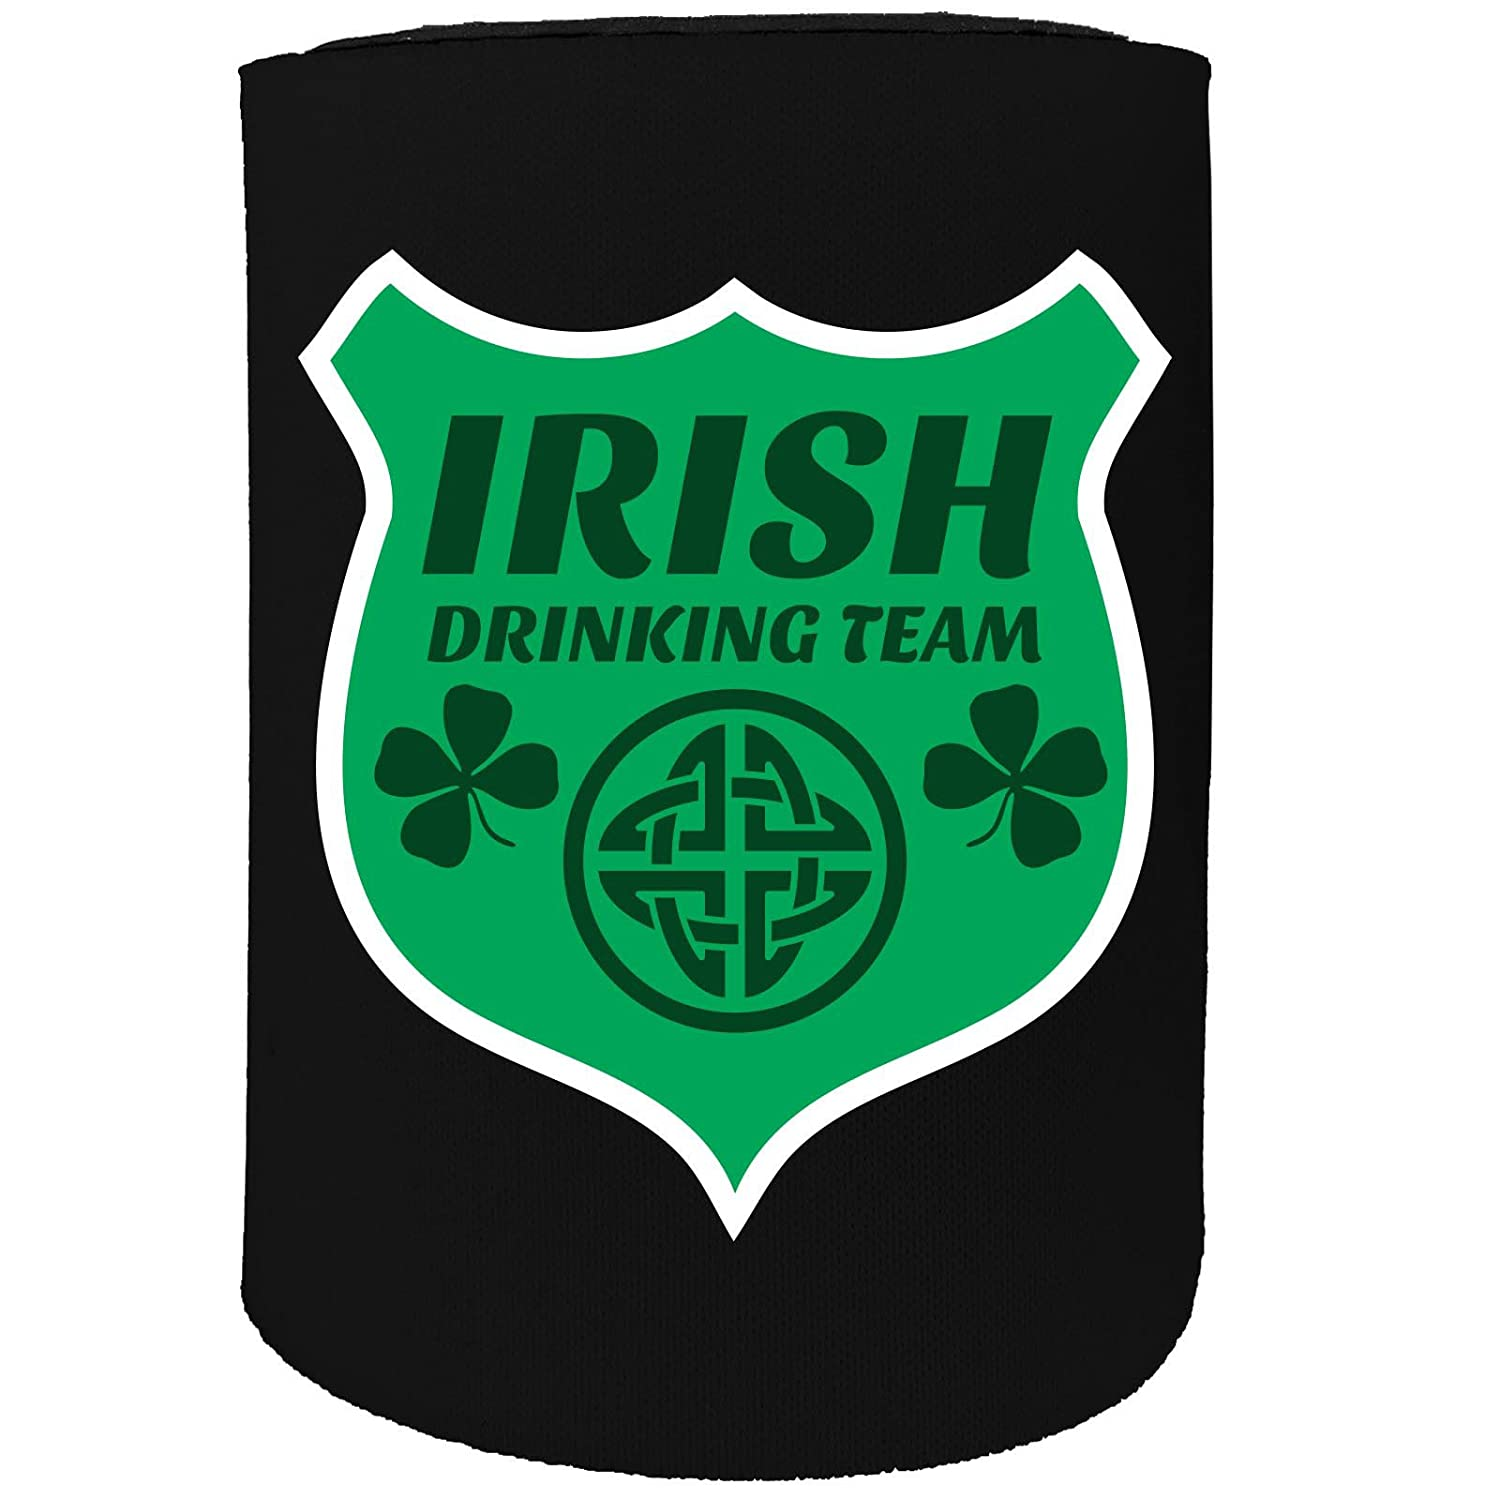 123t Stubby Holder - Irish Drinking Team - Funny Novelty Birthday Gift Joke Beer Can Bottle Coolie Koozie Stubbie